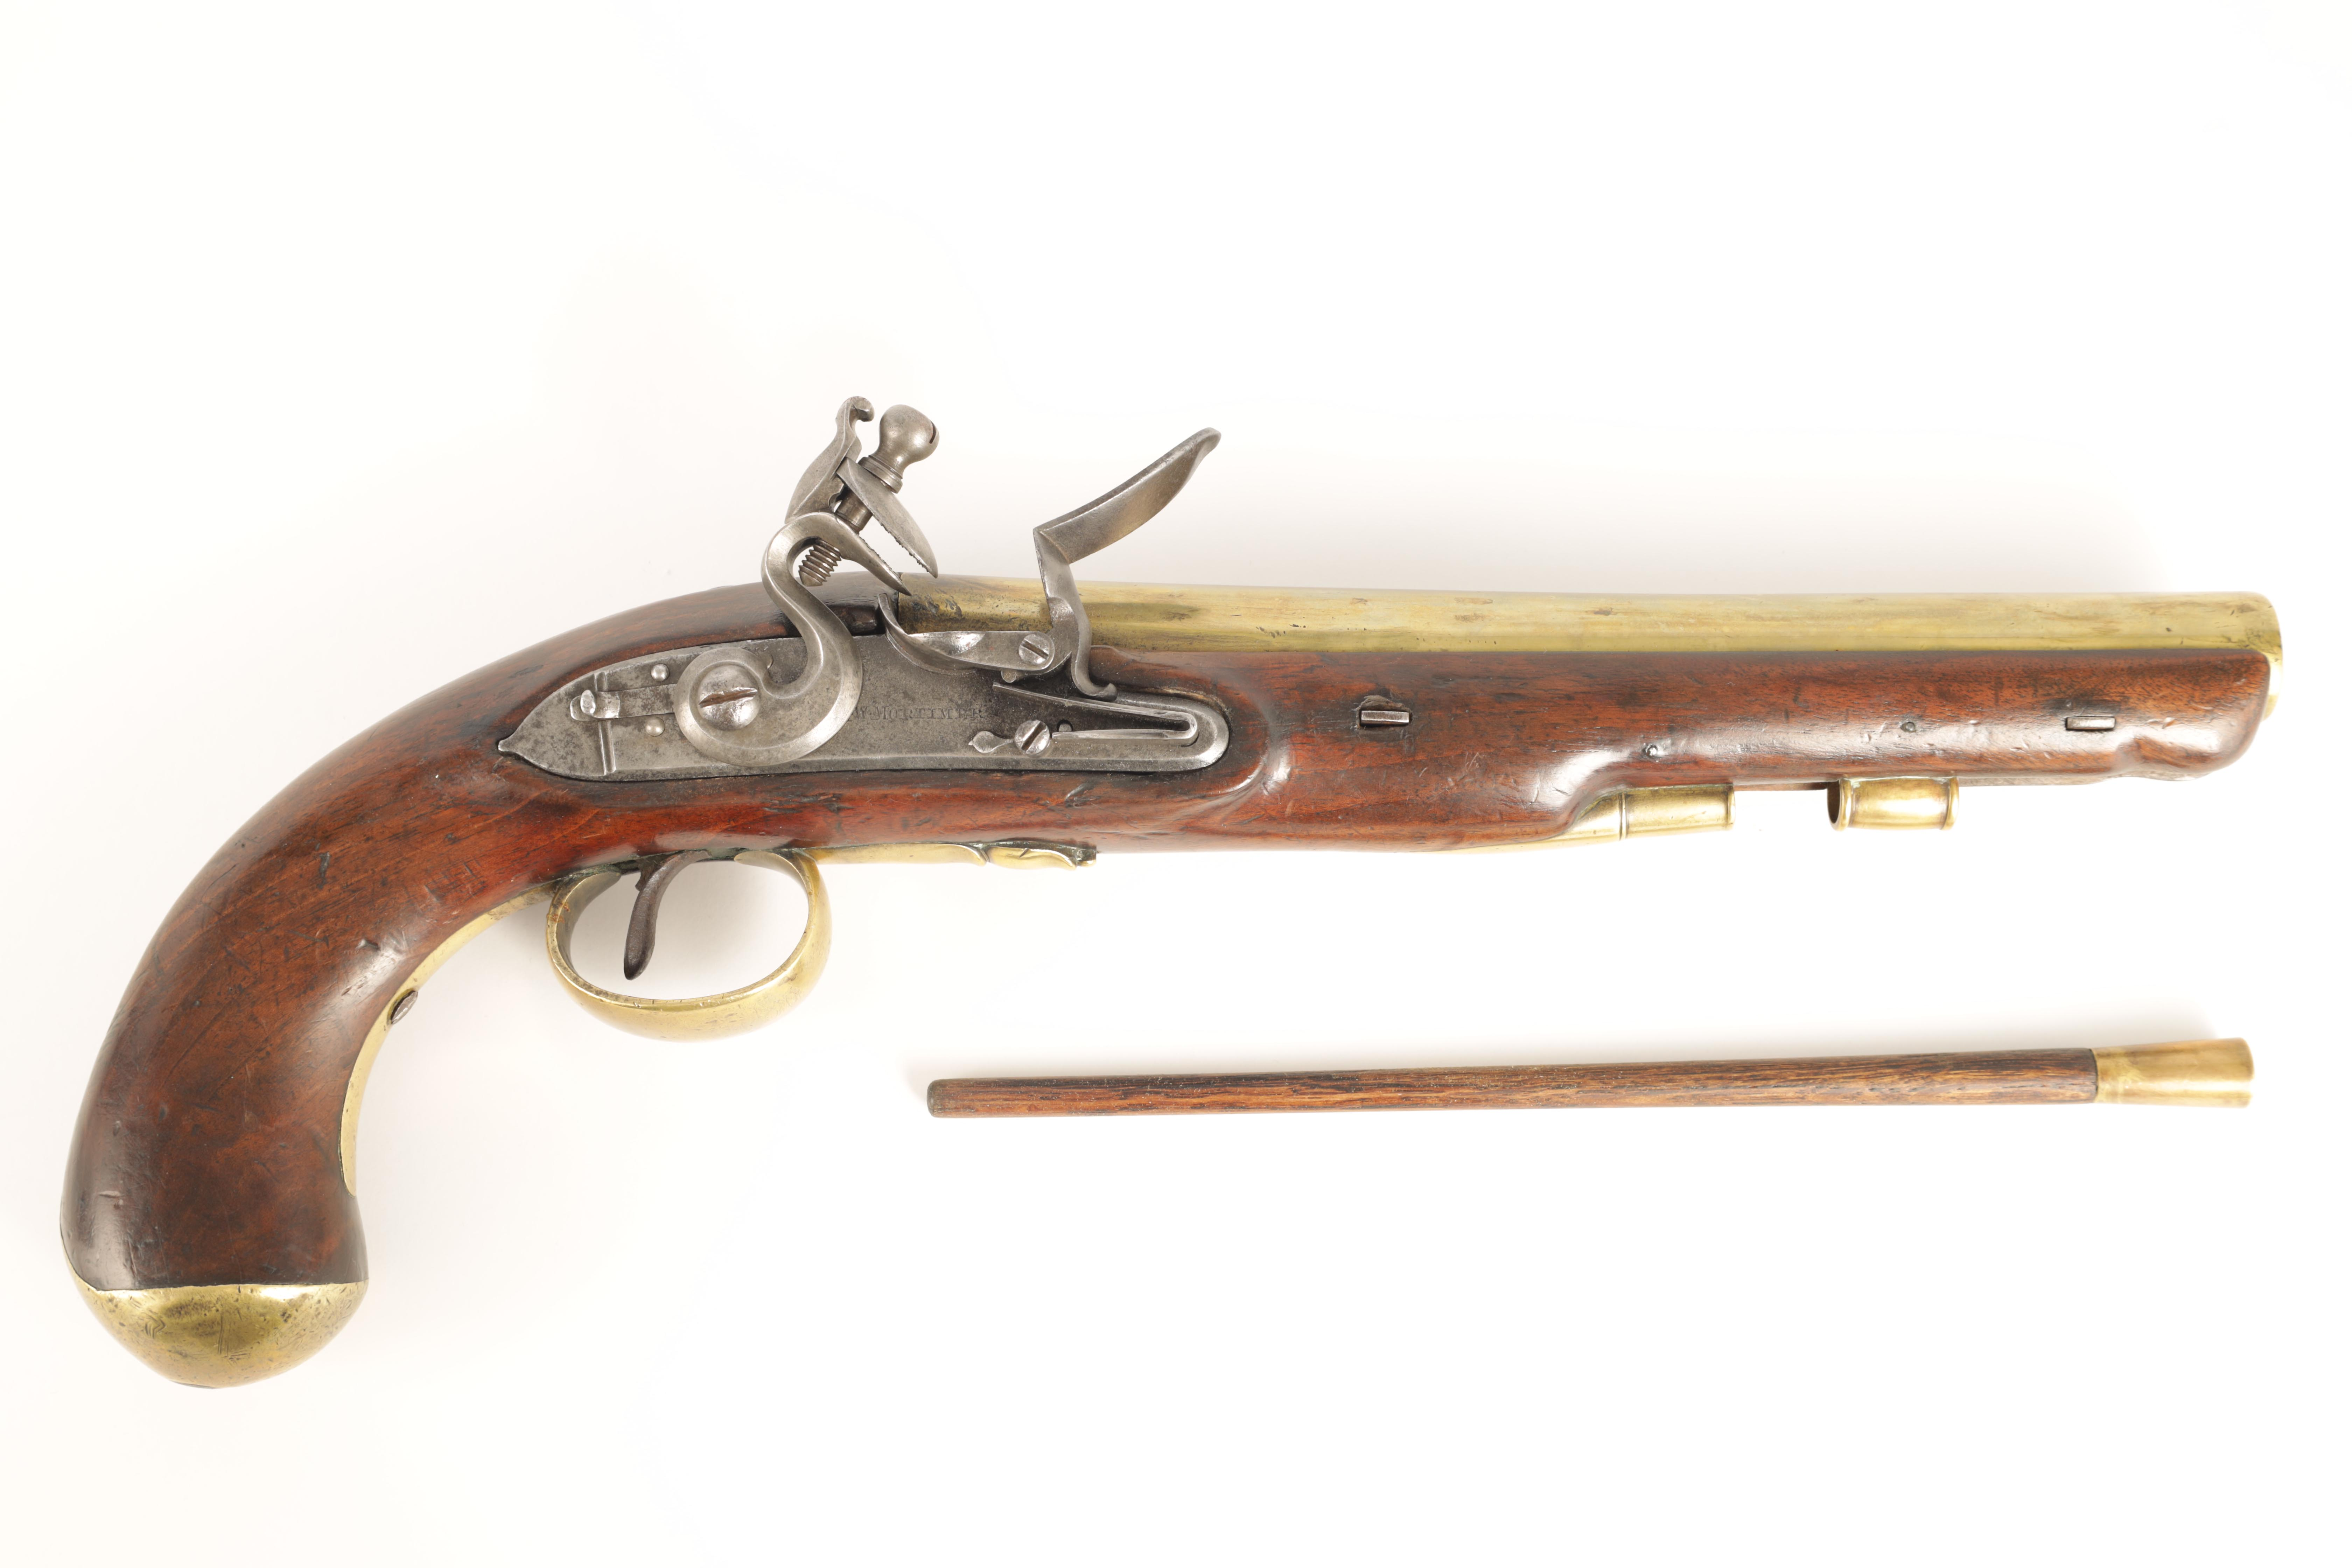 H.W. MORTIMER, LONDON. A RARE GEORGE III ROYAL MAIL COACH FLINTLOCK PISTOL with brass barrel - Image 4 of 9